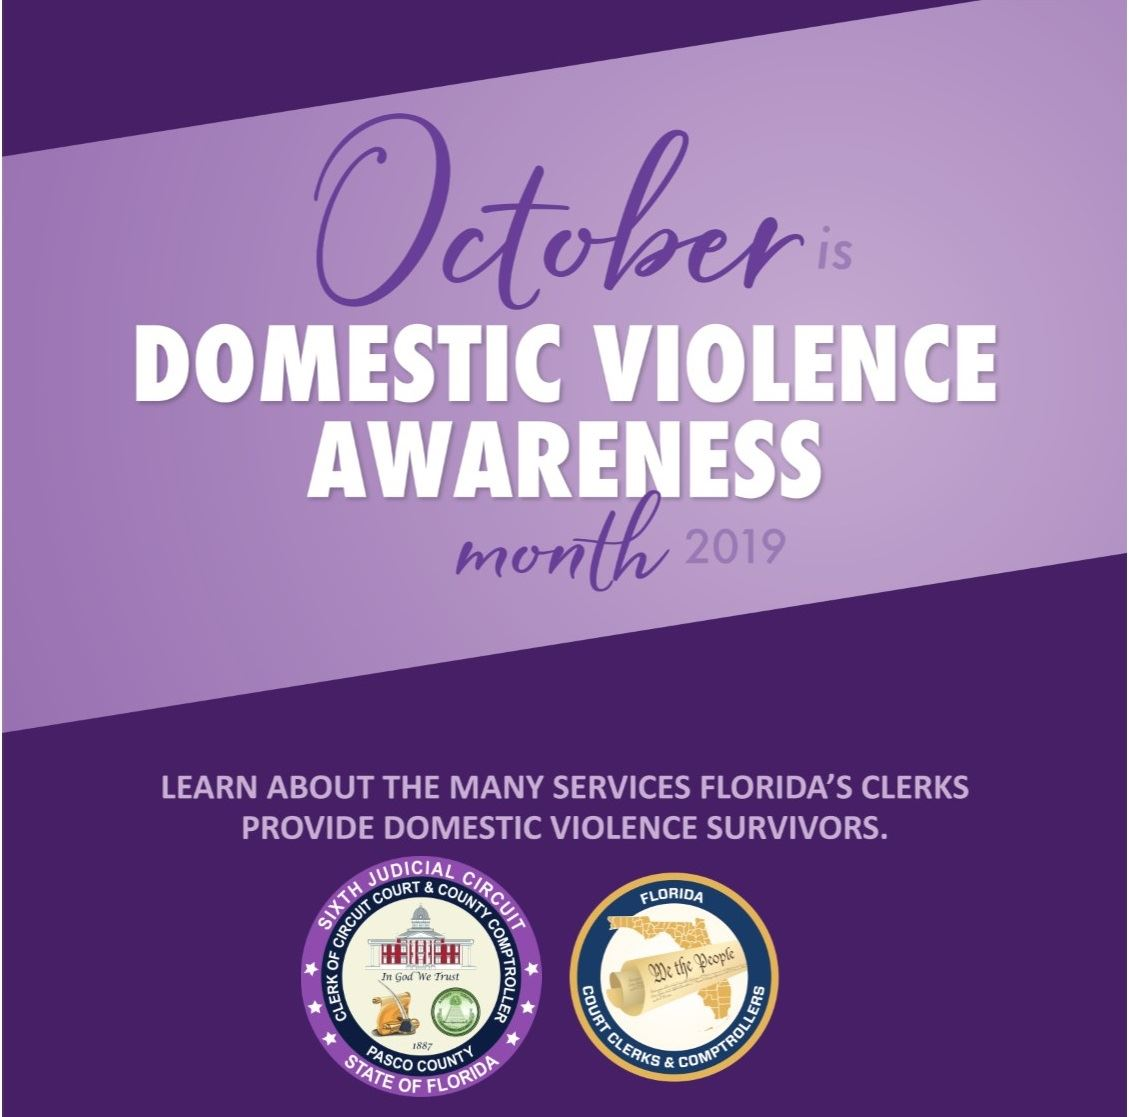 Domestic Violence Awareness Month, call about services